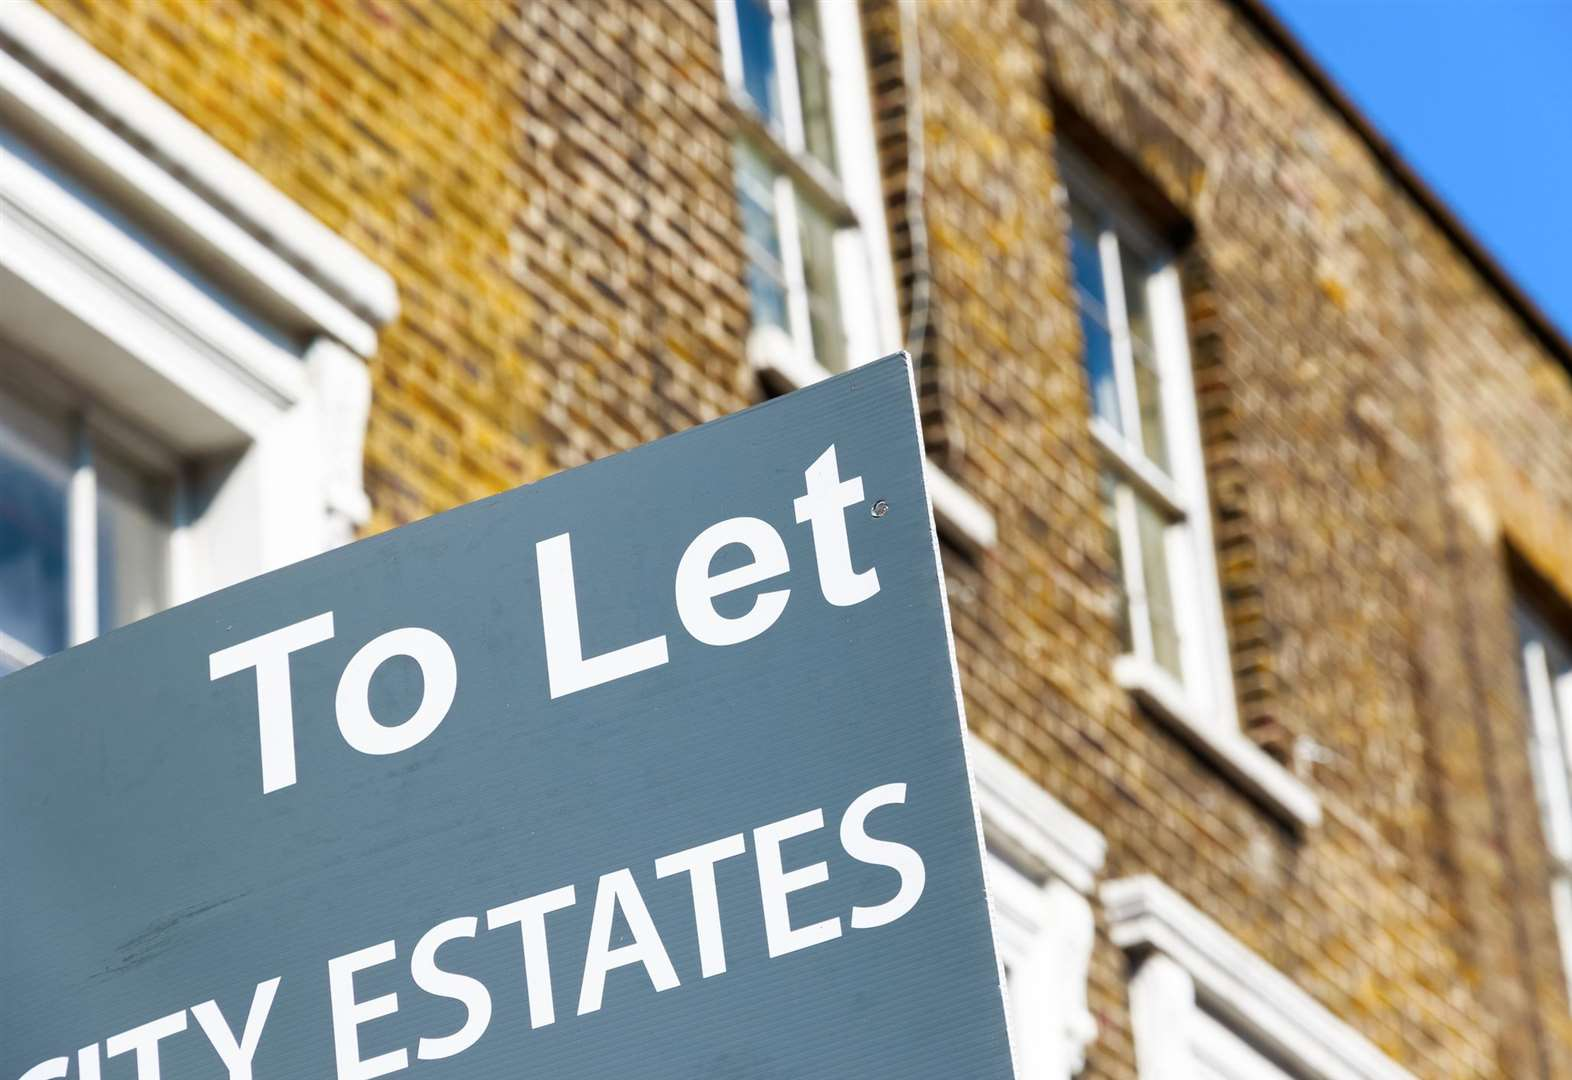 Kent homeowners up to £1.1m better off than renters